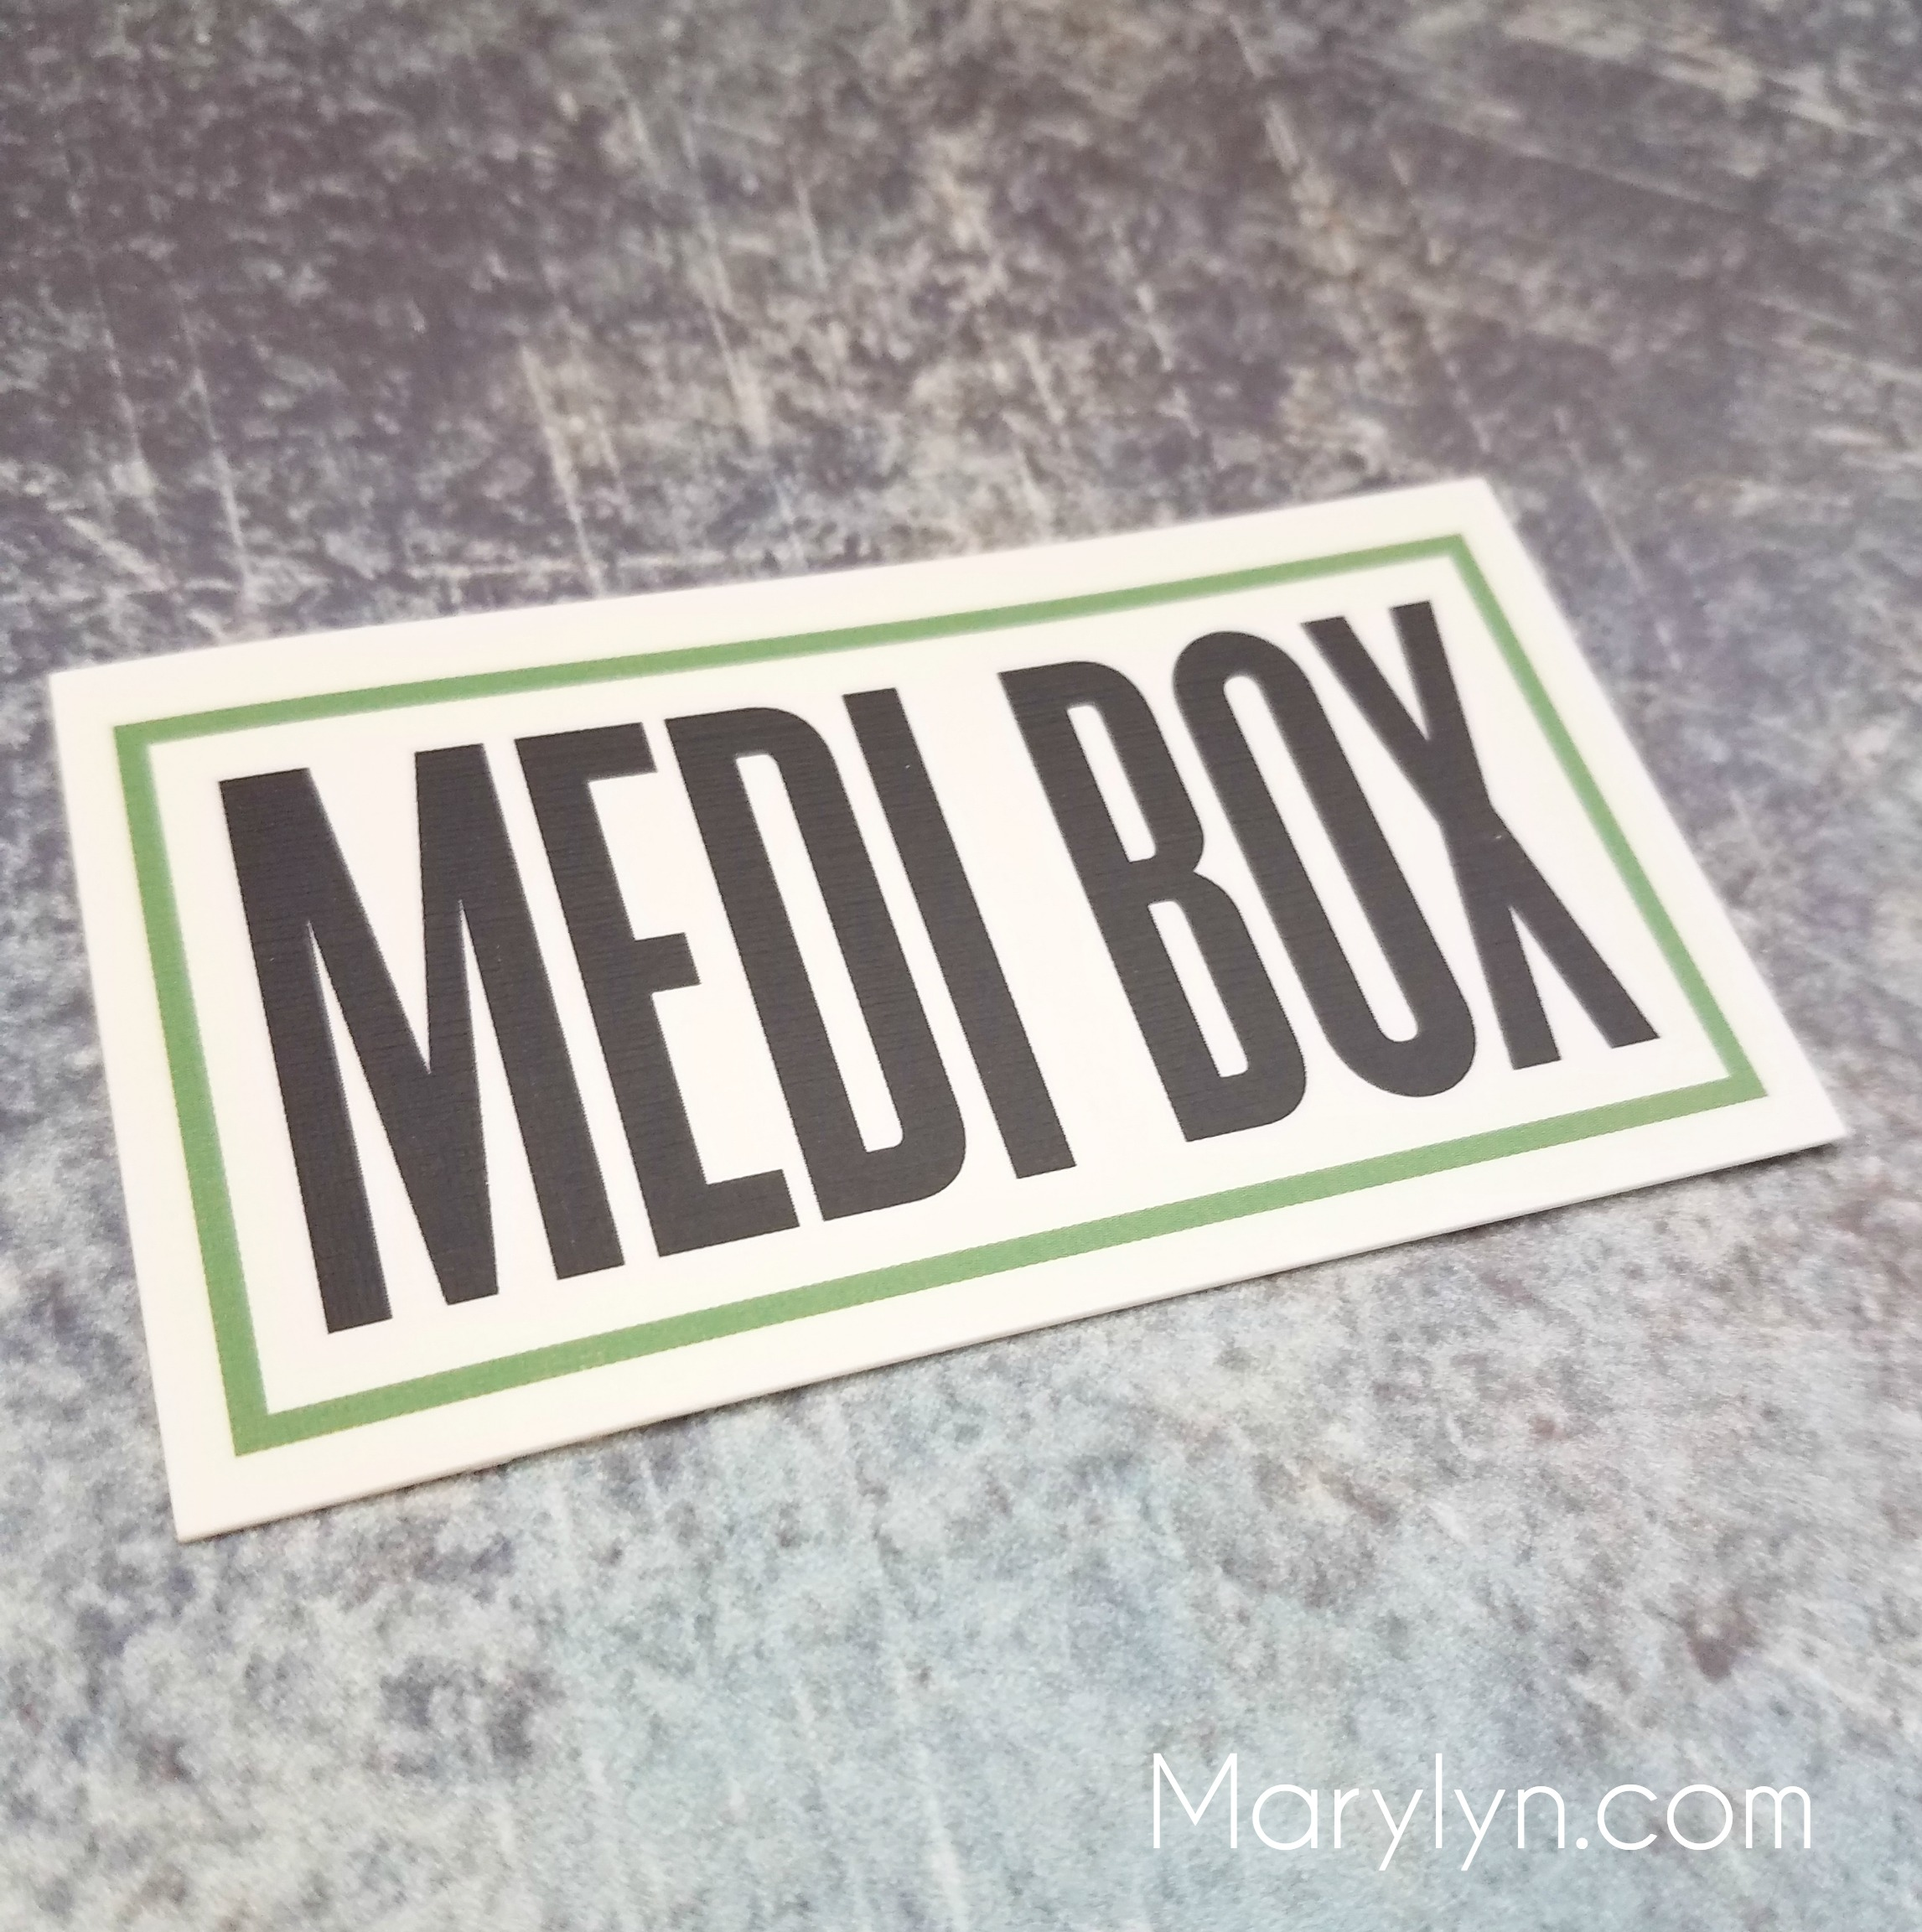 Medibox unboxing final